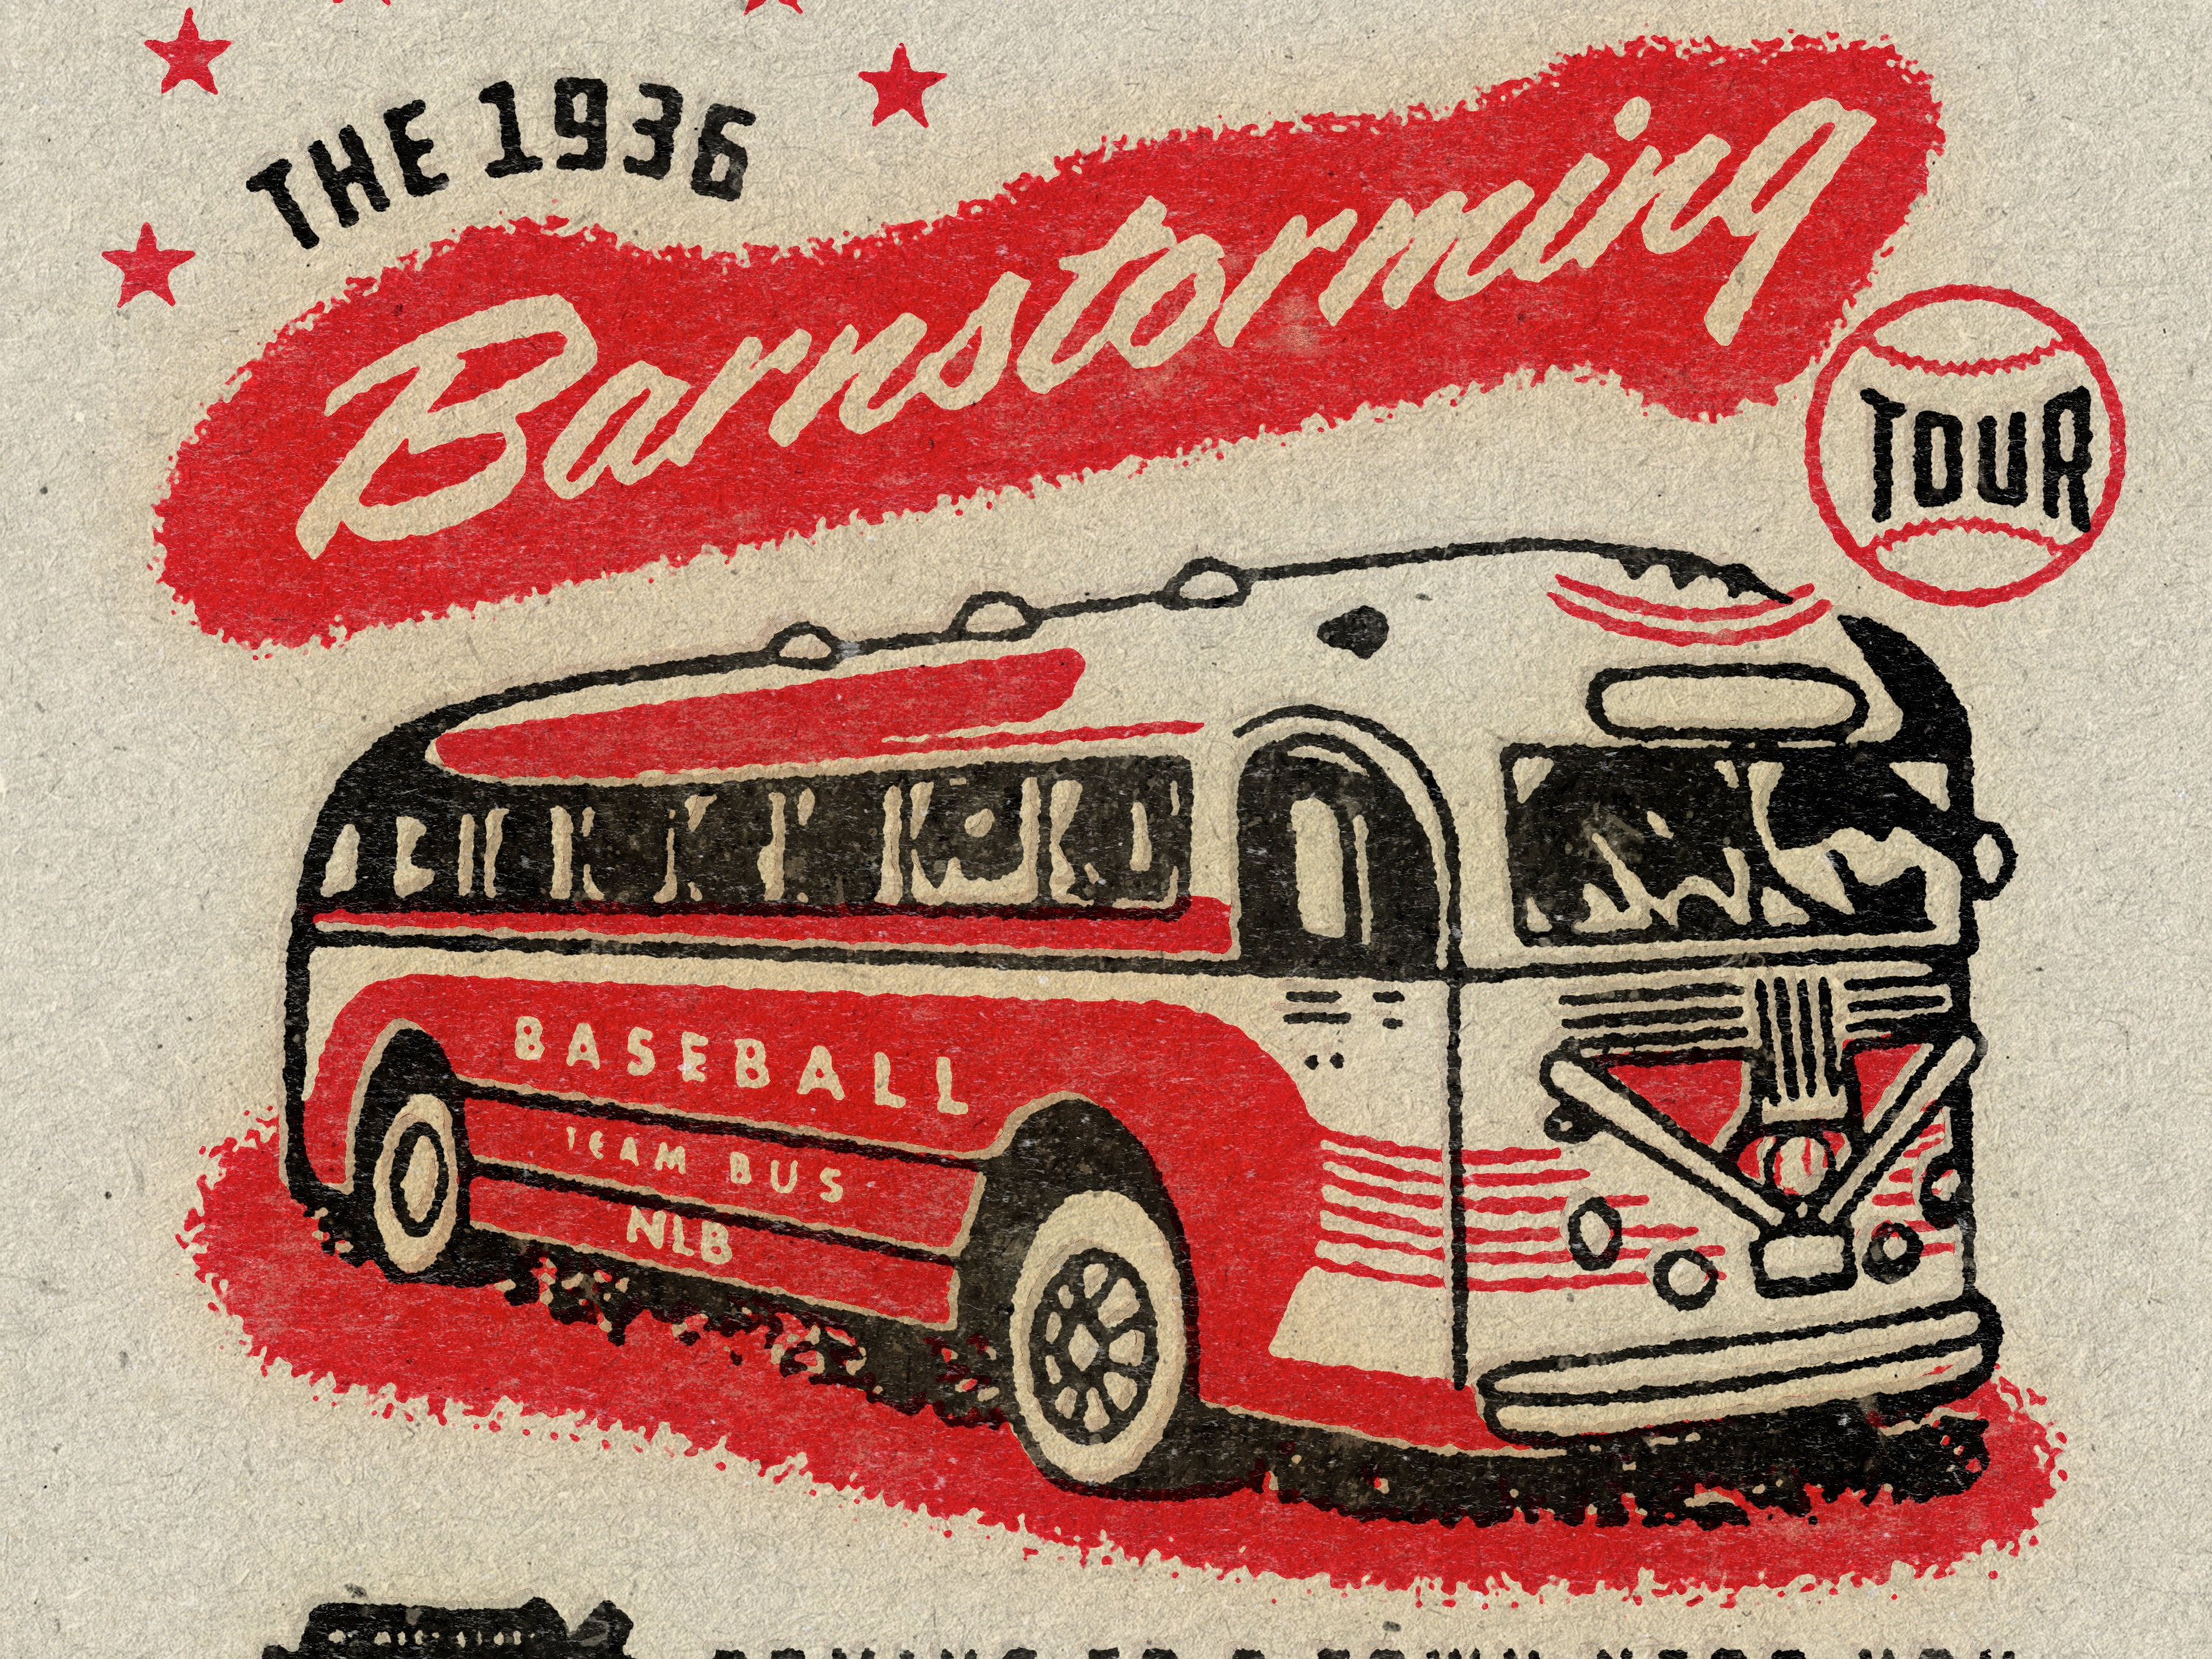 Bus graphic matchbook